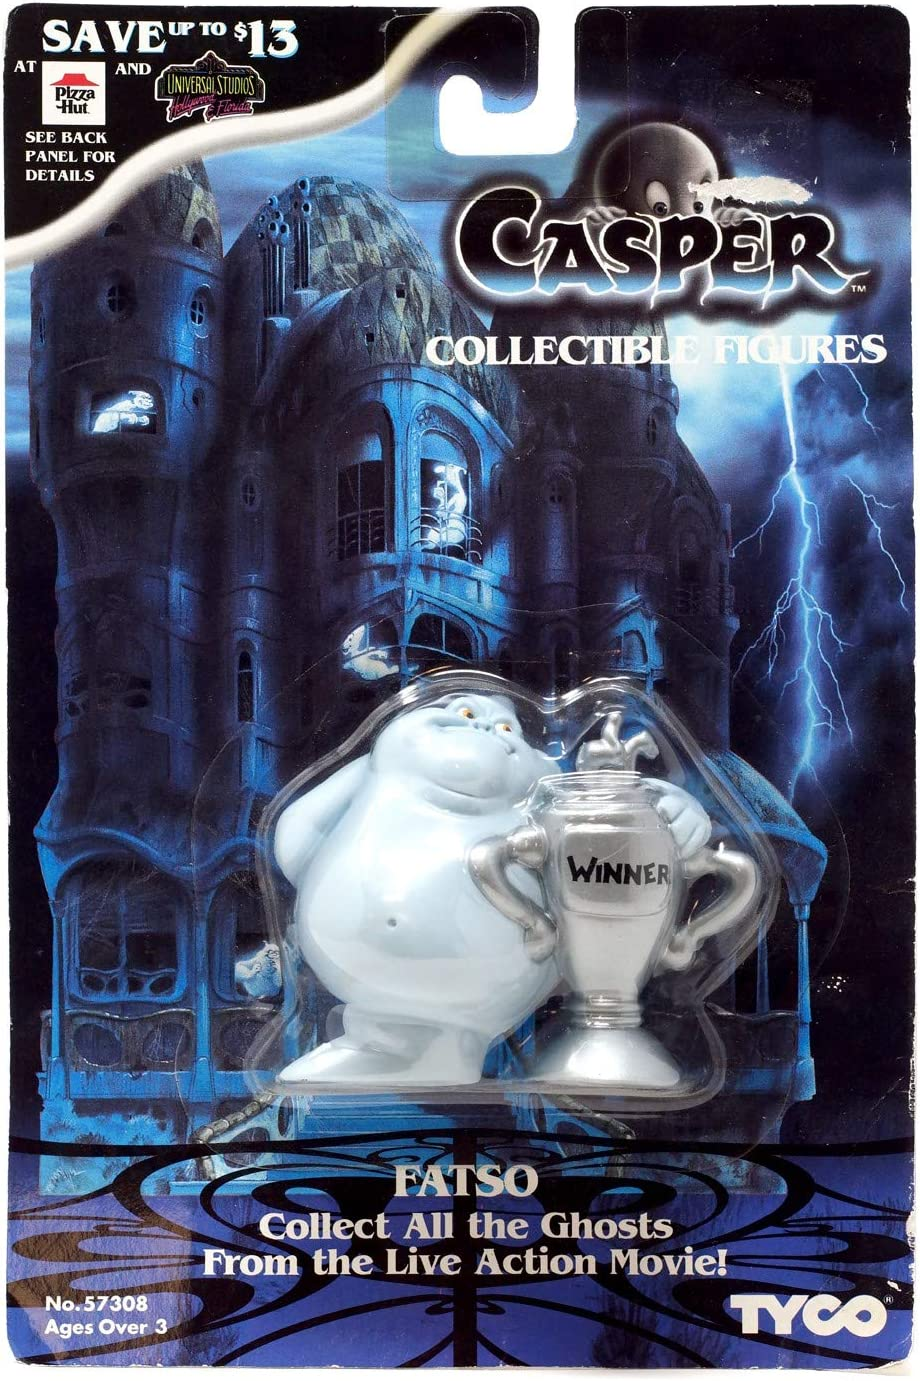 Fatso, the Ghost Collectible Figure - 1995 Casper the Movie Series by Tyco: Amazon.es: Juguetes y juegos